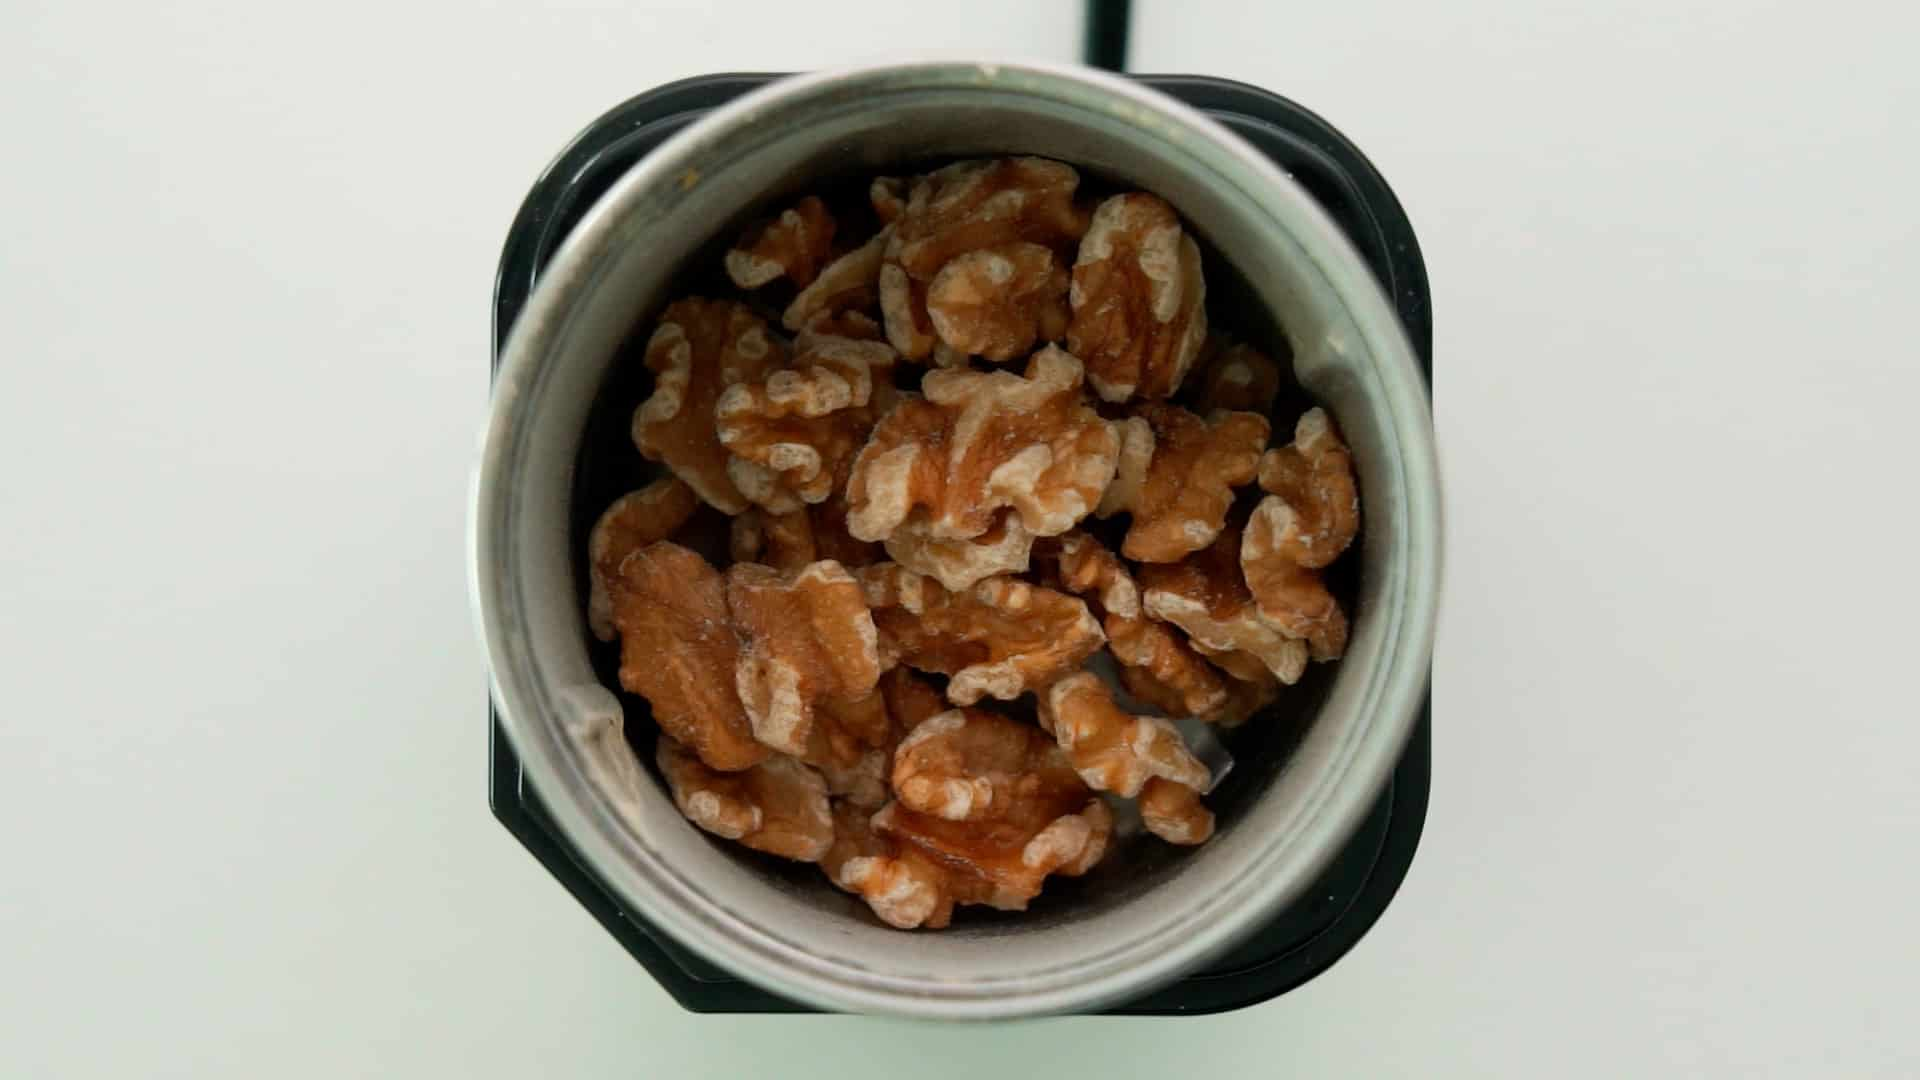 Walnuts in spice grinder.